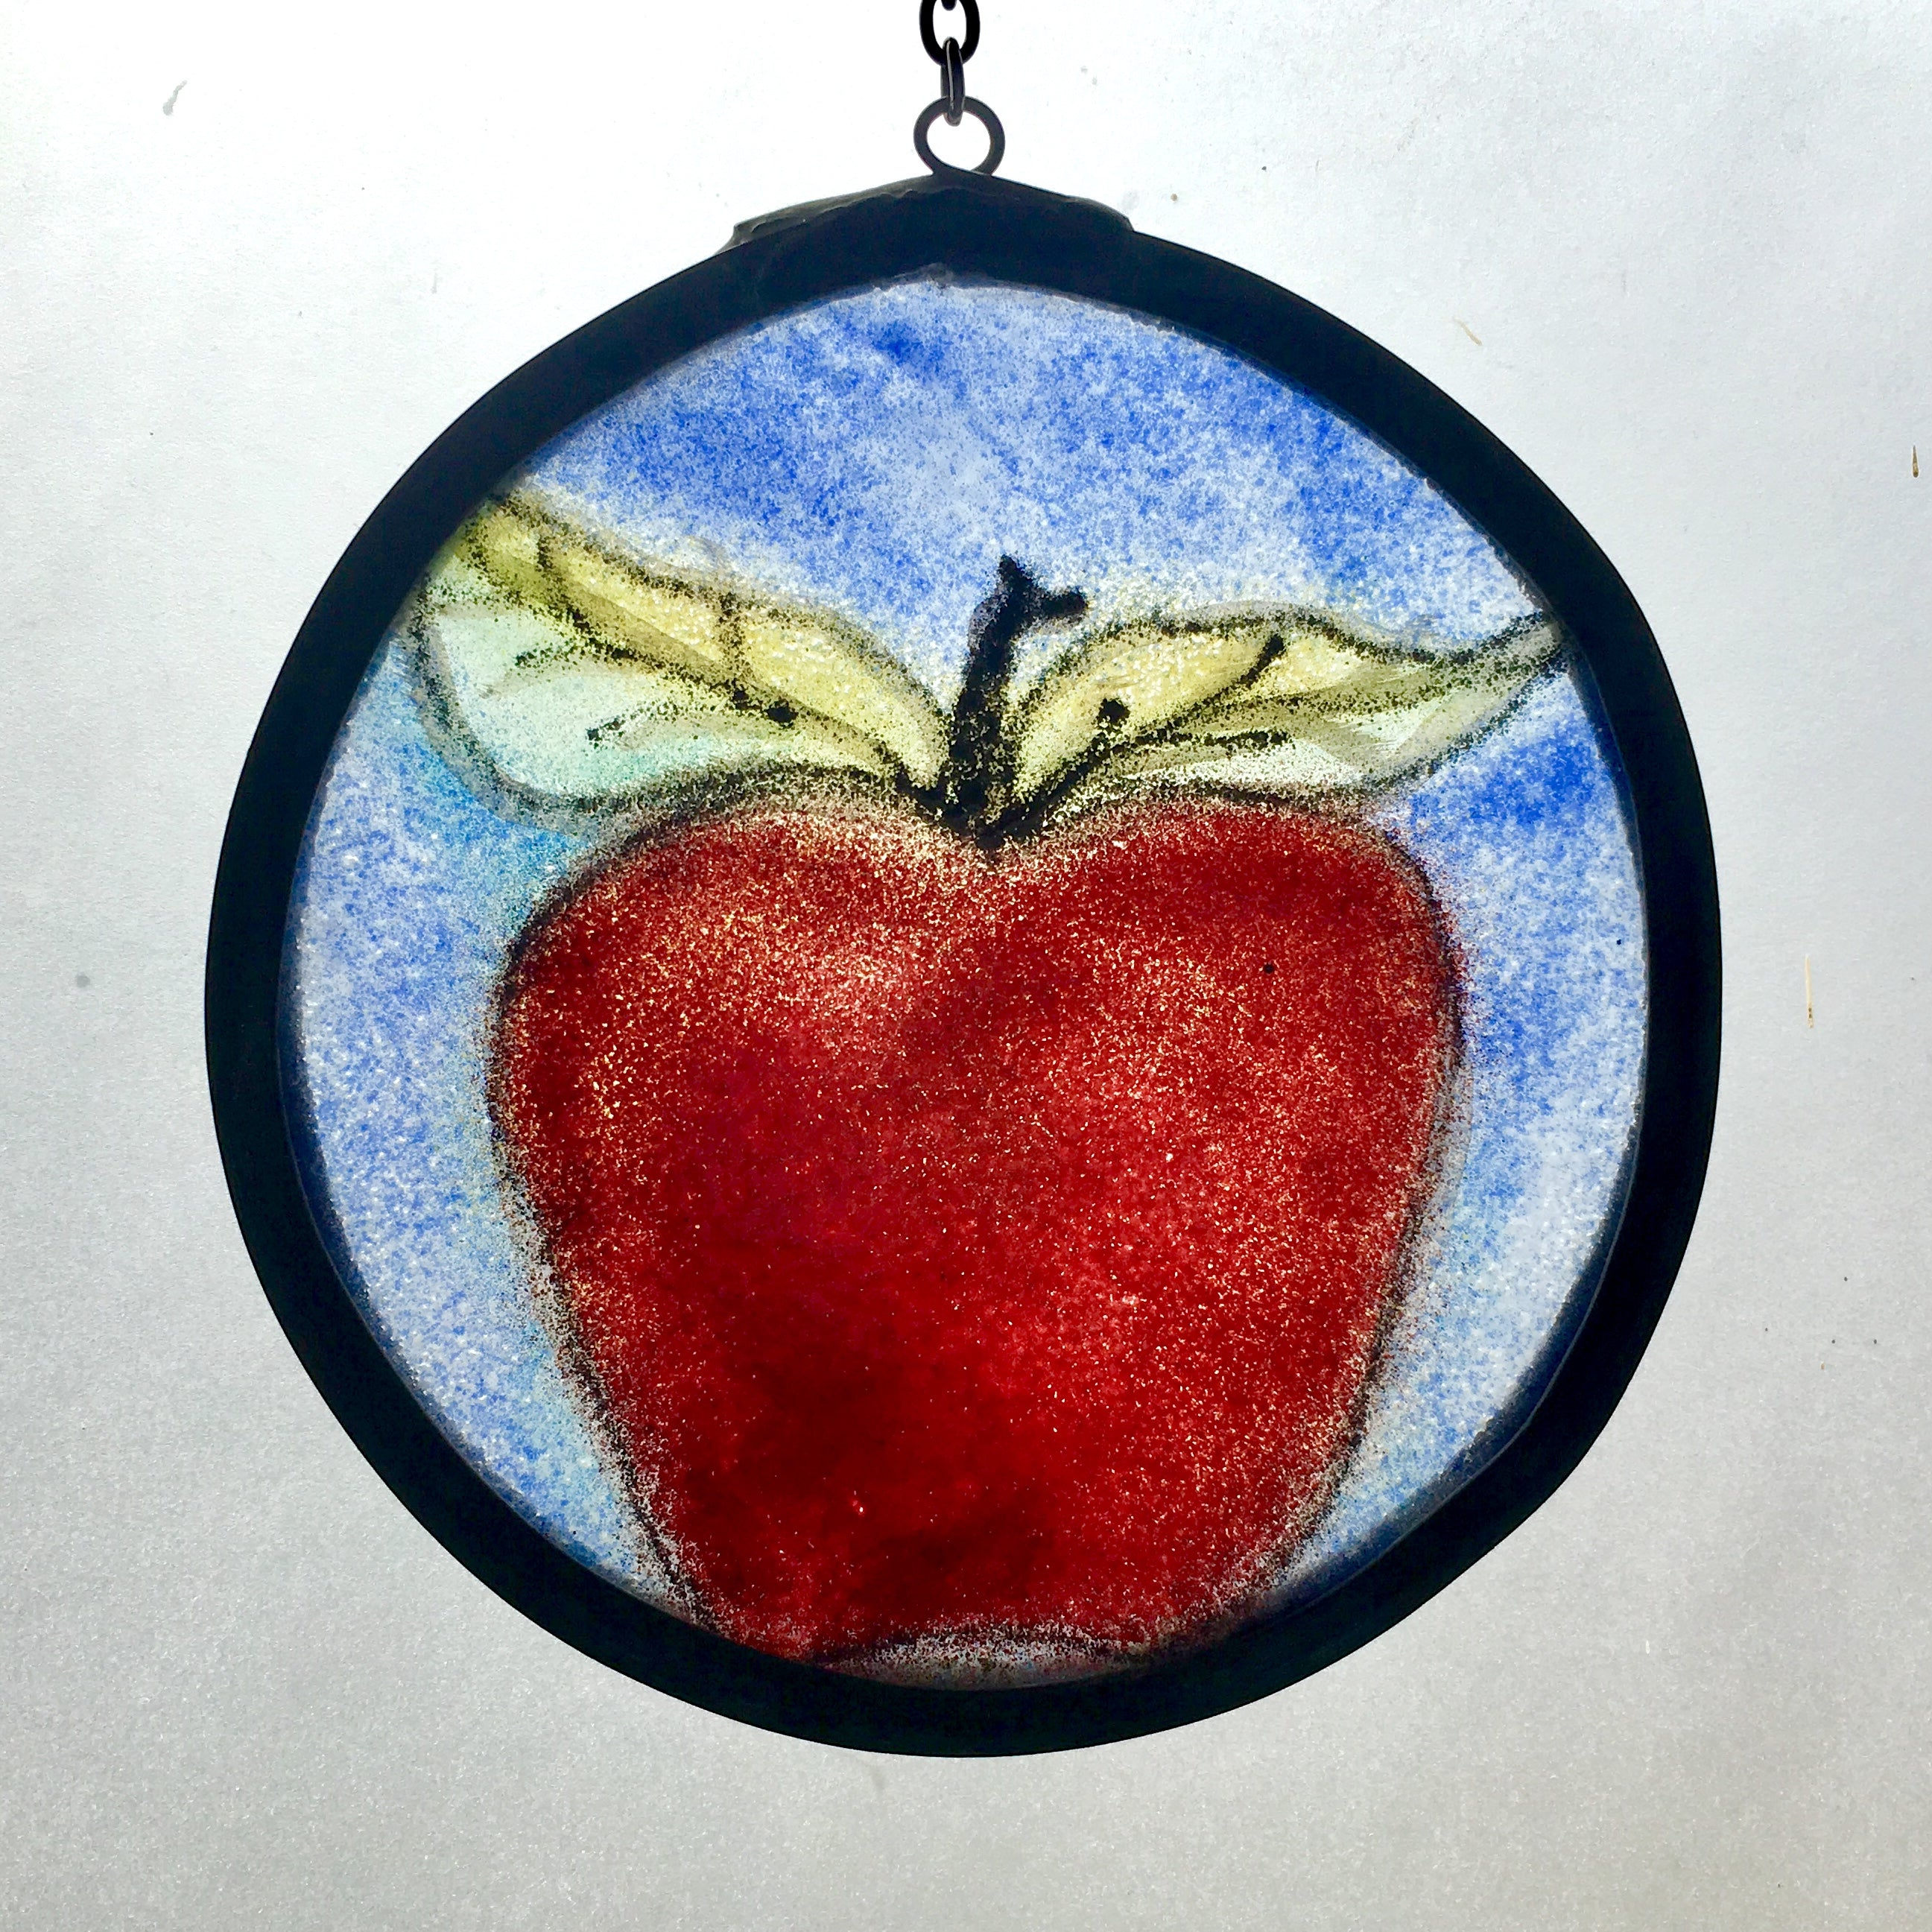 Apple by Dorothy Cline